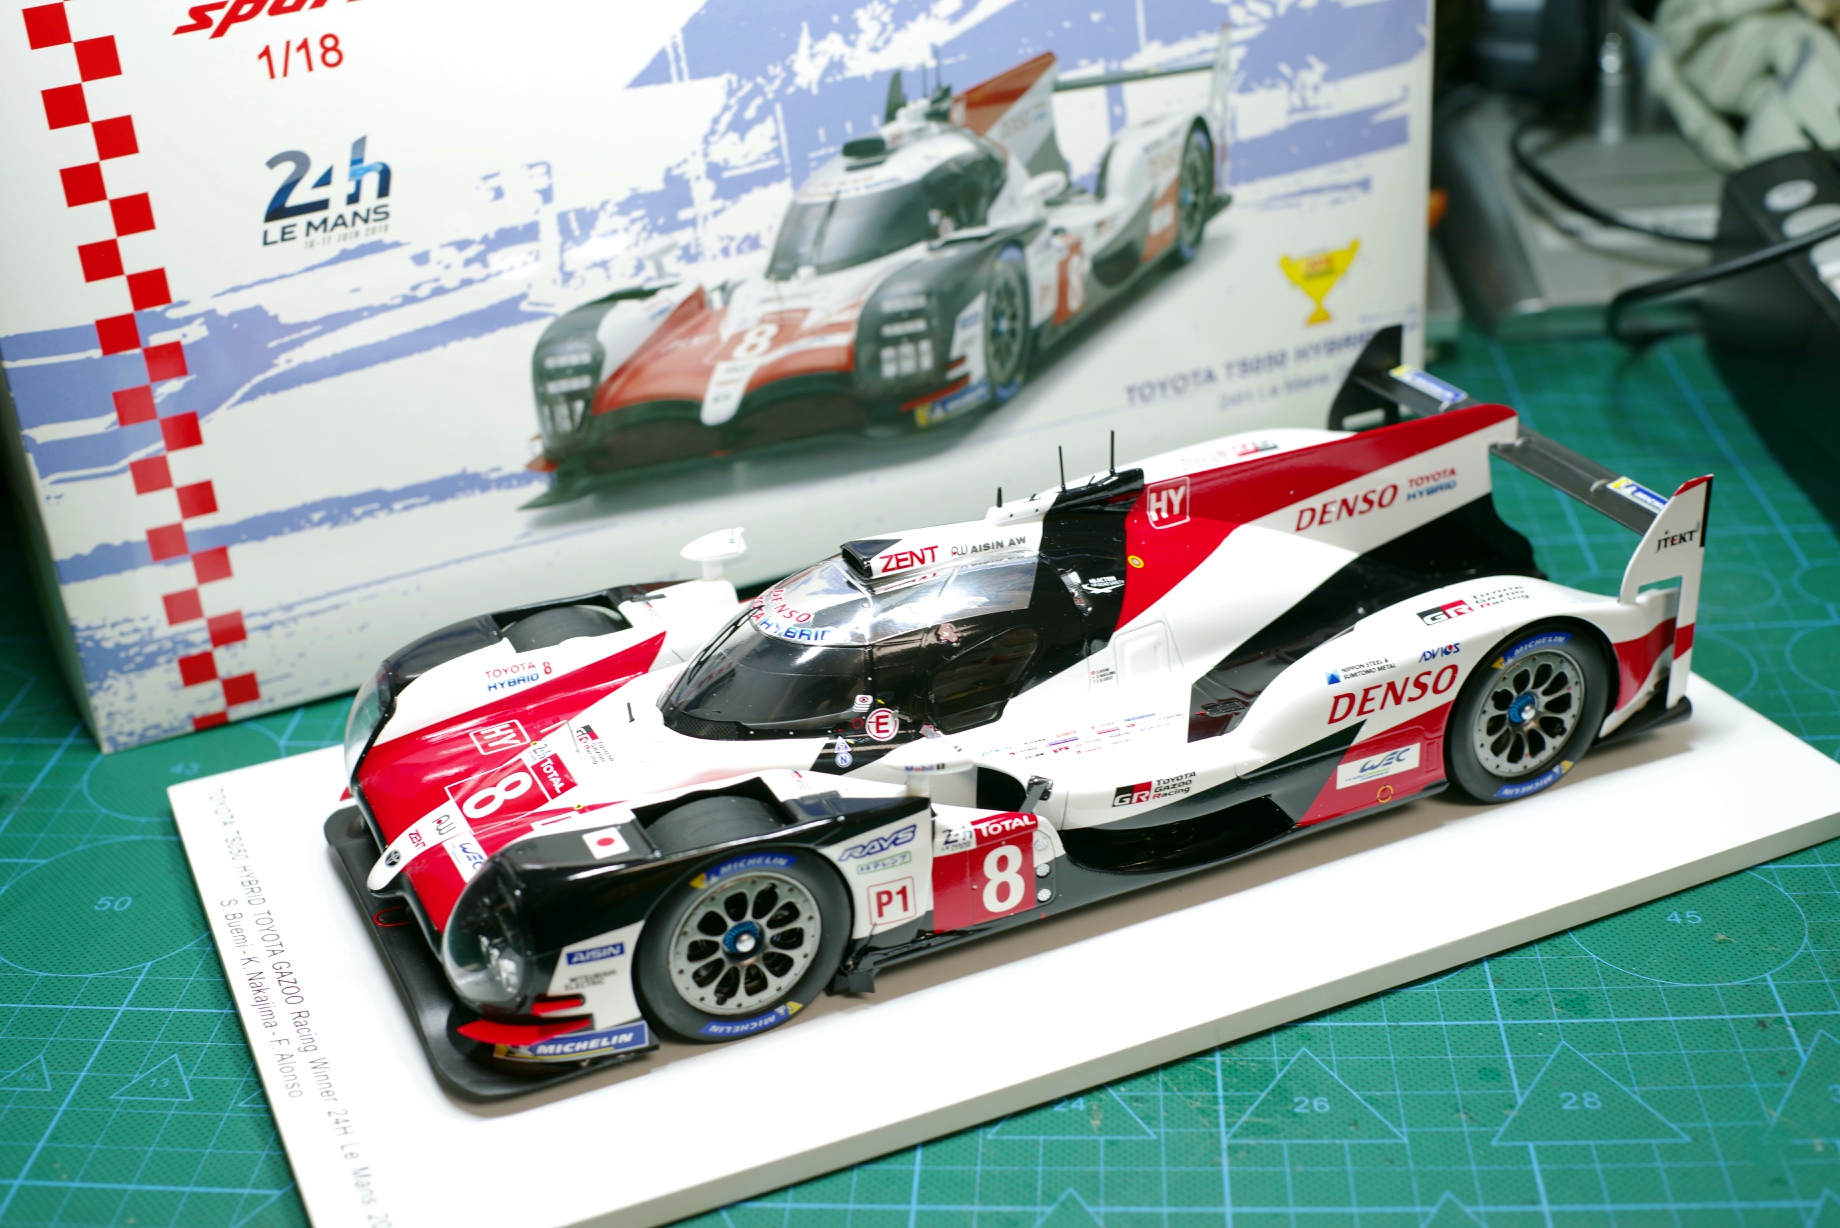 SPARK Decast Car model 1/18 2018 Le Mans Championship For Toyota TS050 Hybrid 8# Alonso Alloy car model toy With Original Box